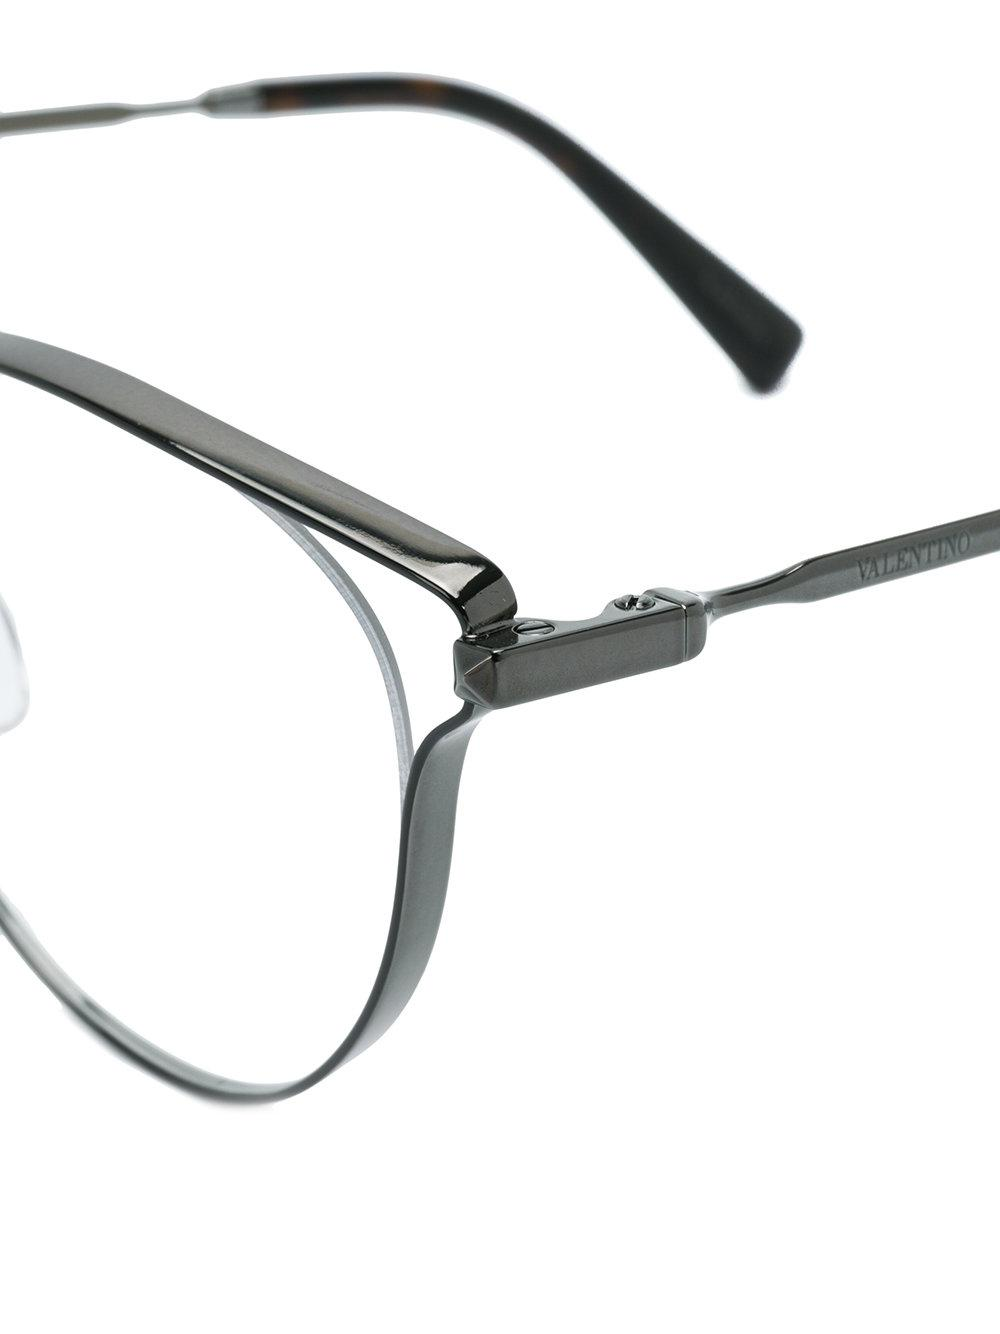 Lyst - Valentino Eyewear Round Frame Glasses in Metallic